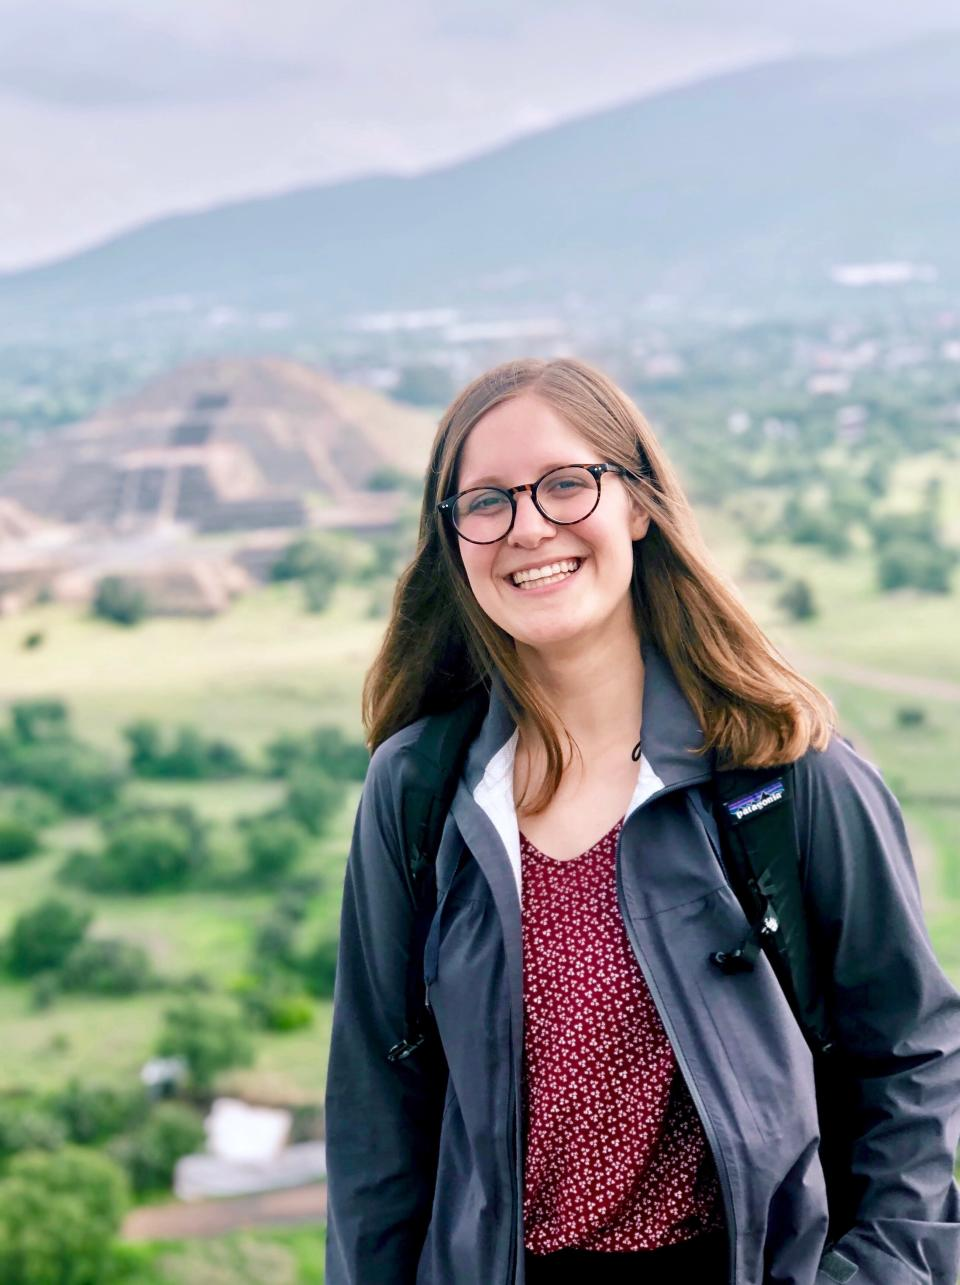 This photo provided by Hattie Seten shows Hattie Seten of Sioux Falls, S.D., who was named a Rhodes Scholar on Sunday, Nov. 22, 2020. She is a senior at South Dakota State University and the first Rhodes scholarship winner from the school in 68 years. (Hattie Seten via AP)